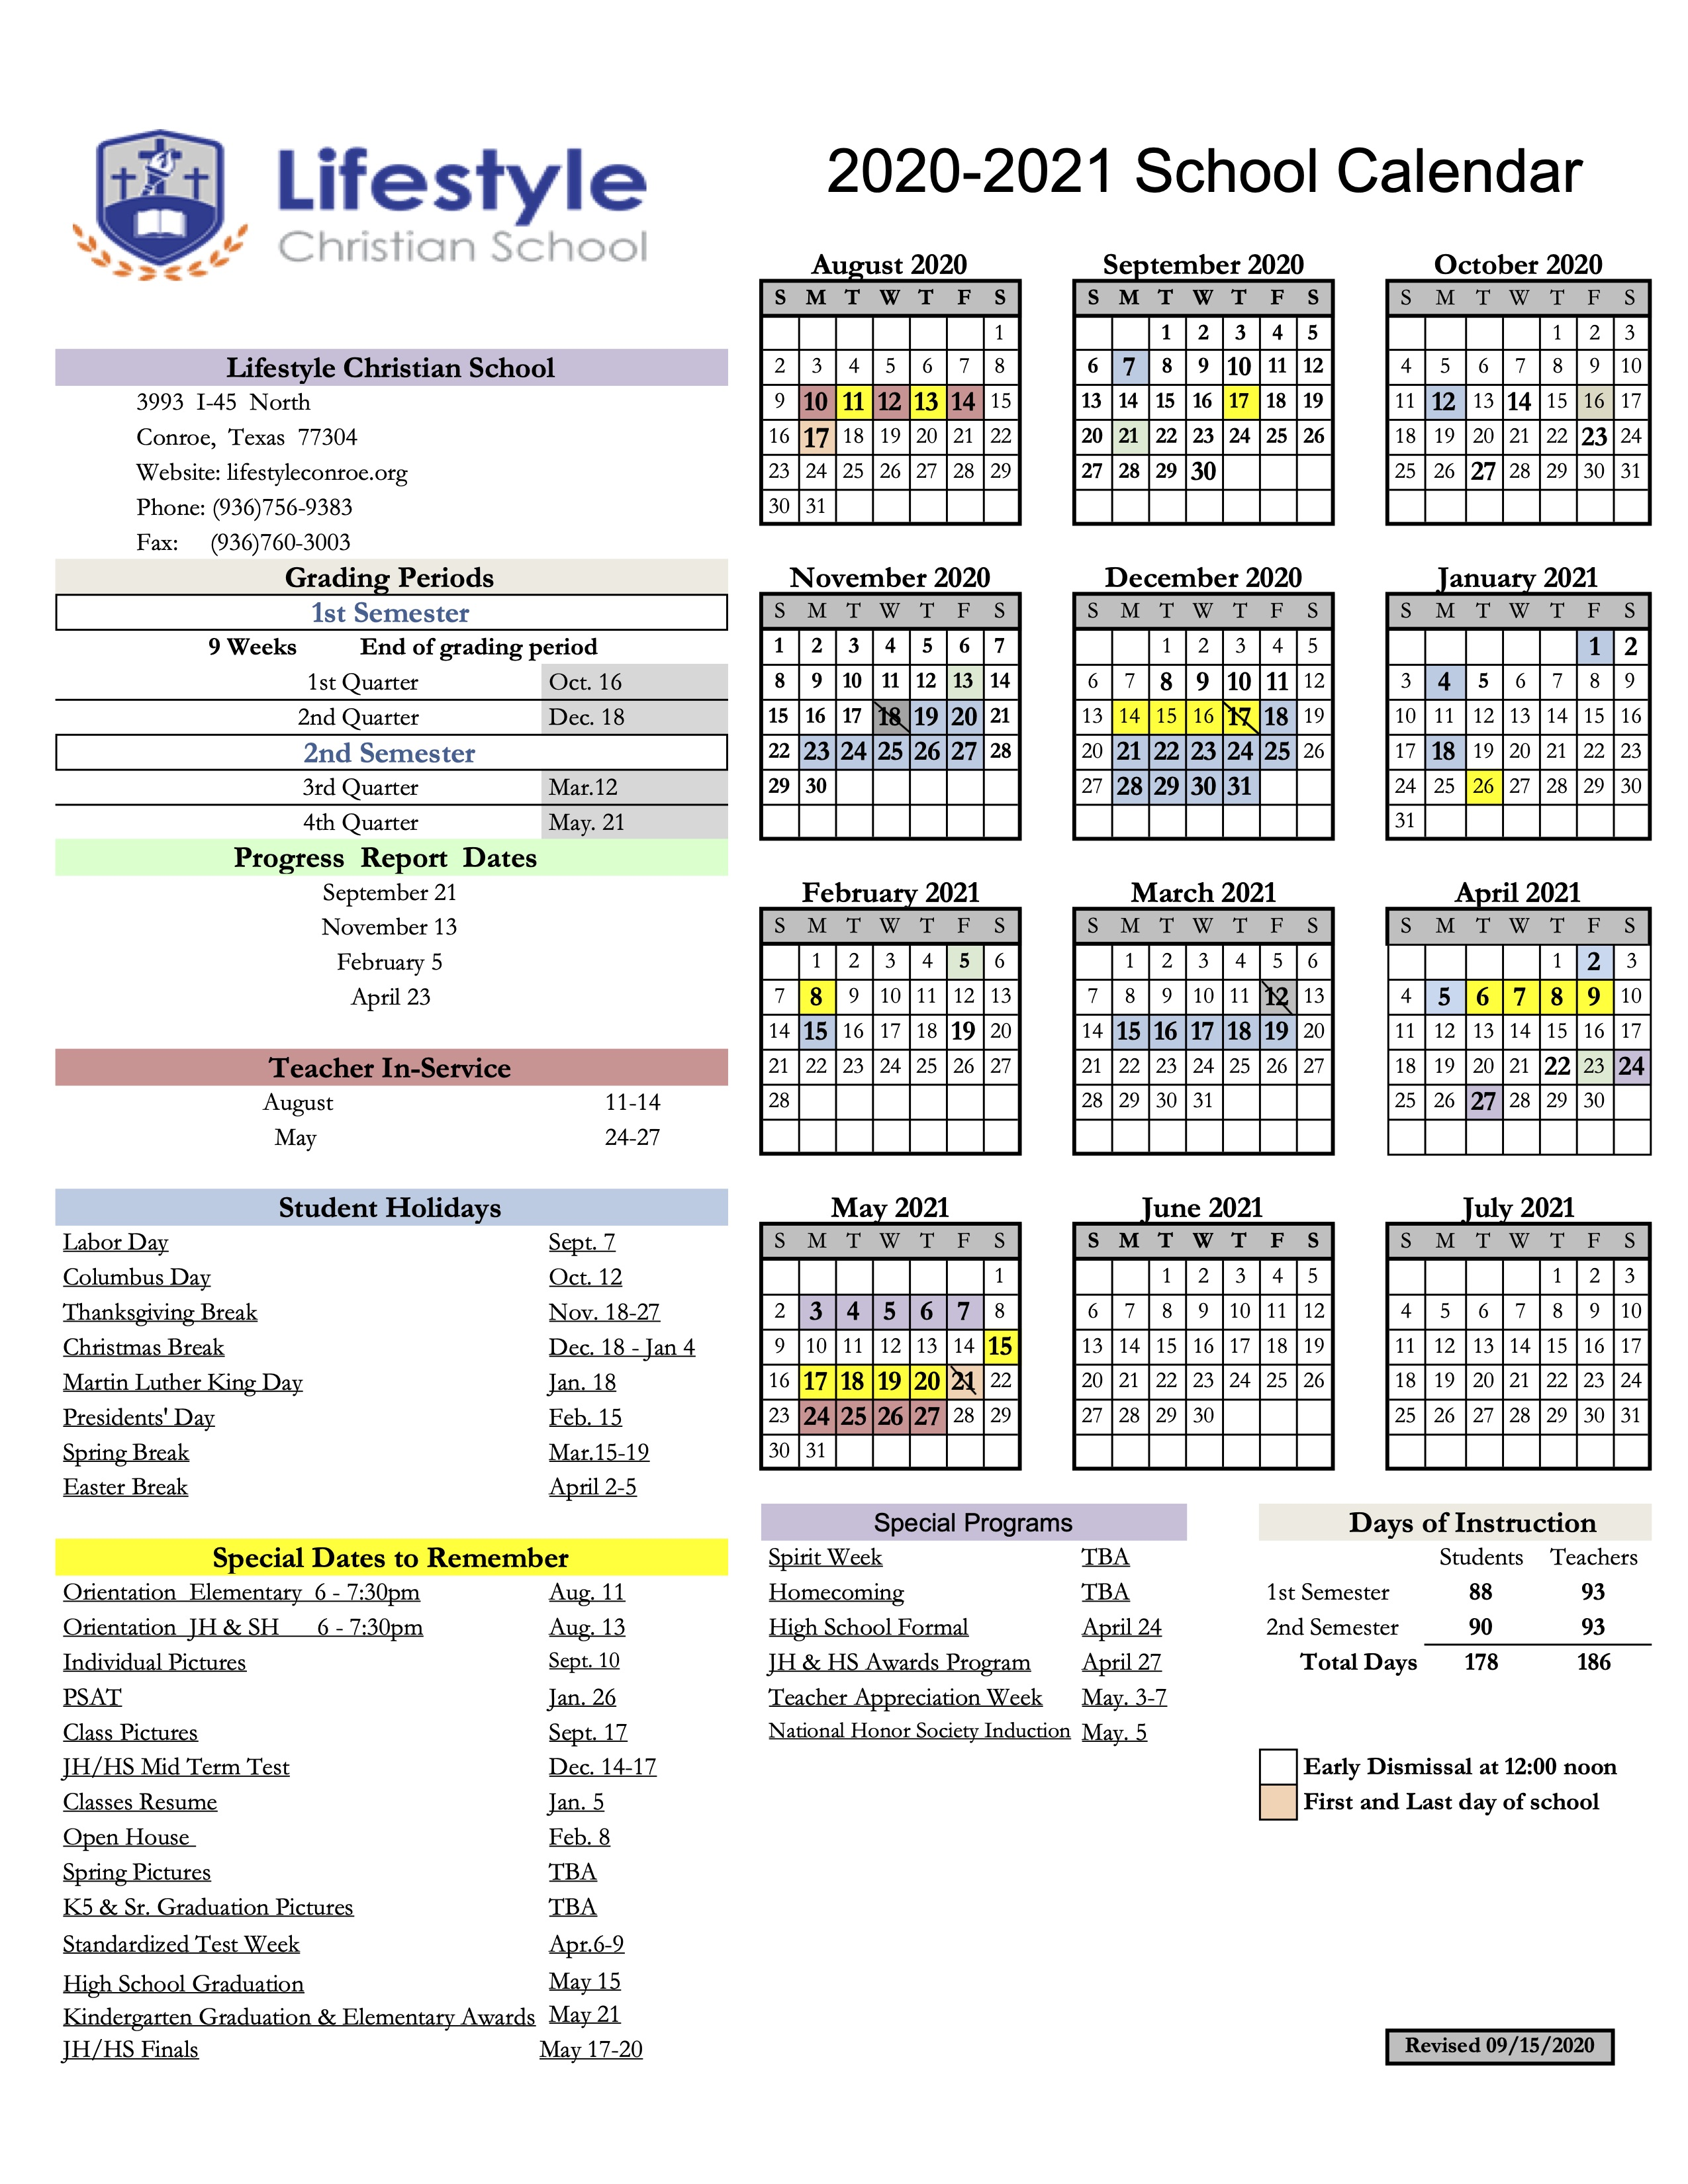 LCS Academic Calendar 202-21 REVISED 9-15